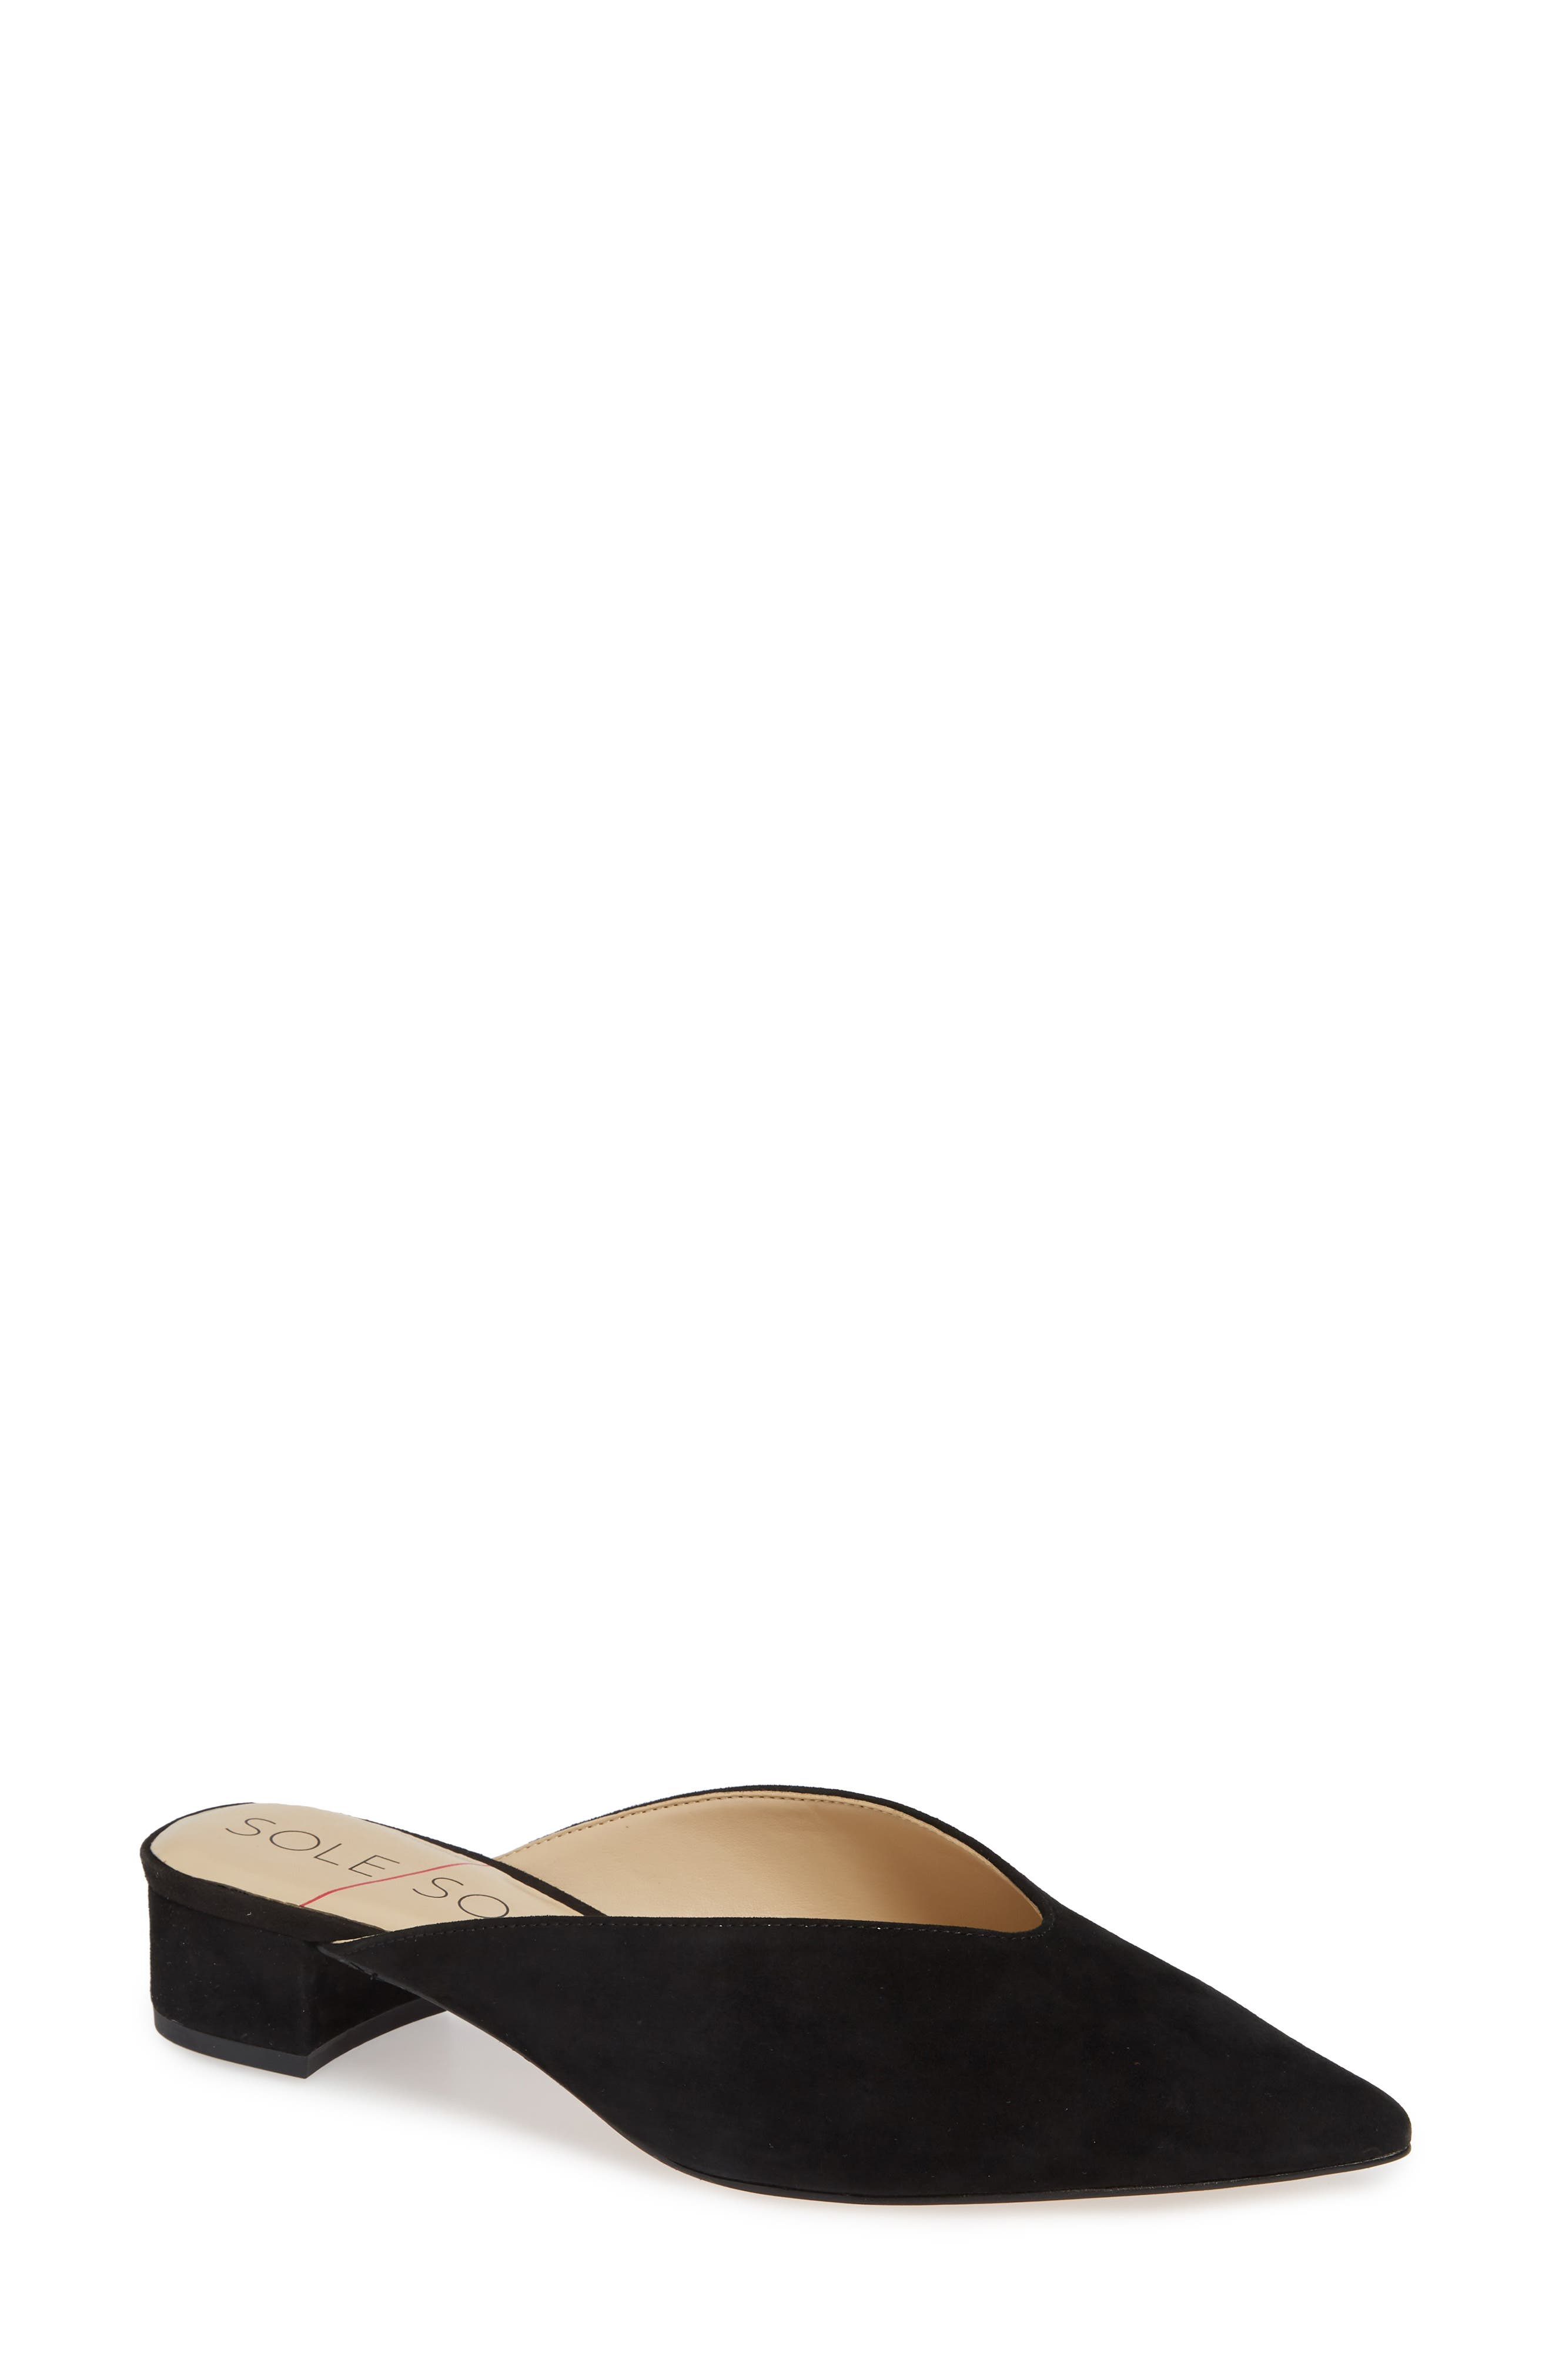 SOLE SOCIETY, Marlessa Mule, Main thumbnail 1, color, BLACK SUEDE